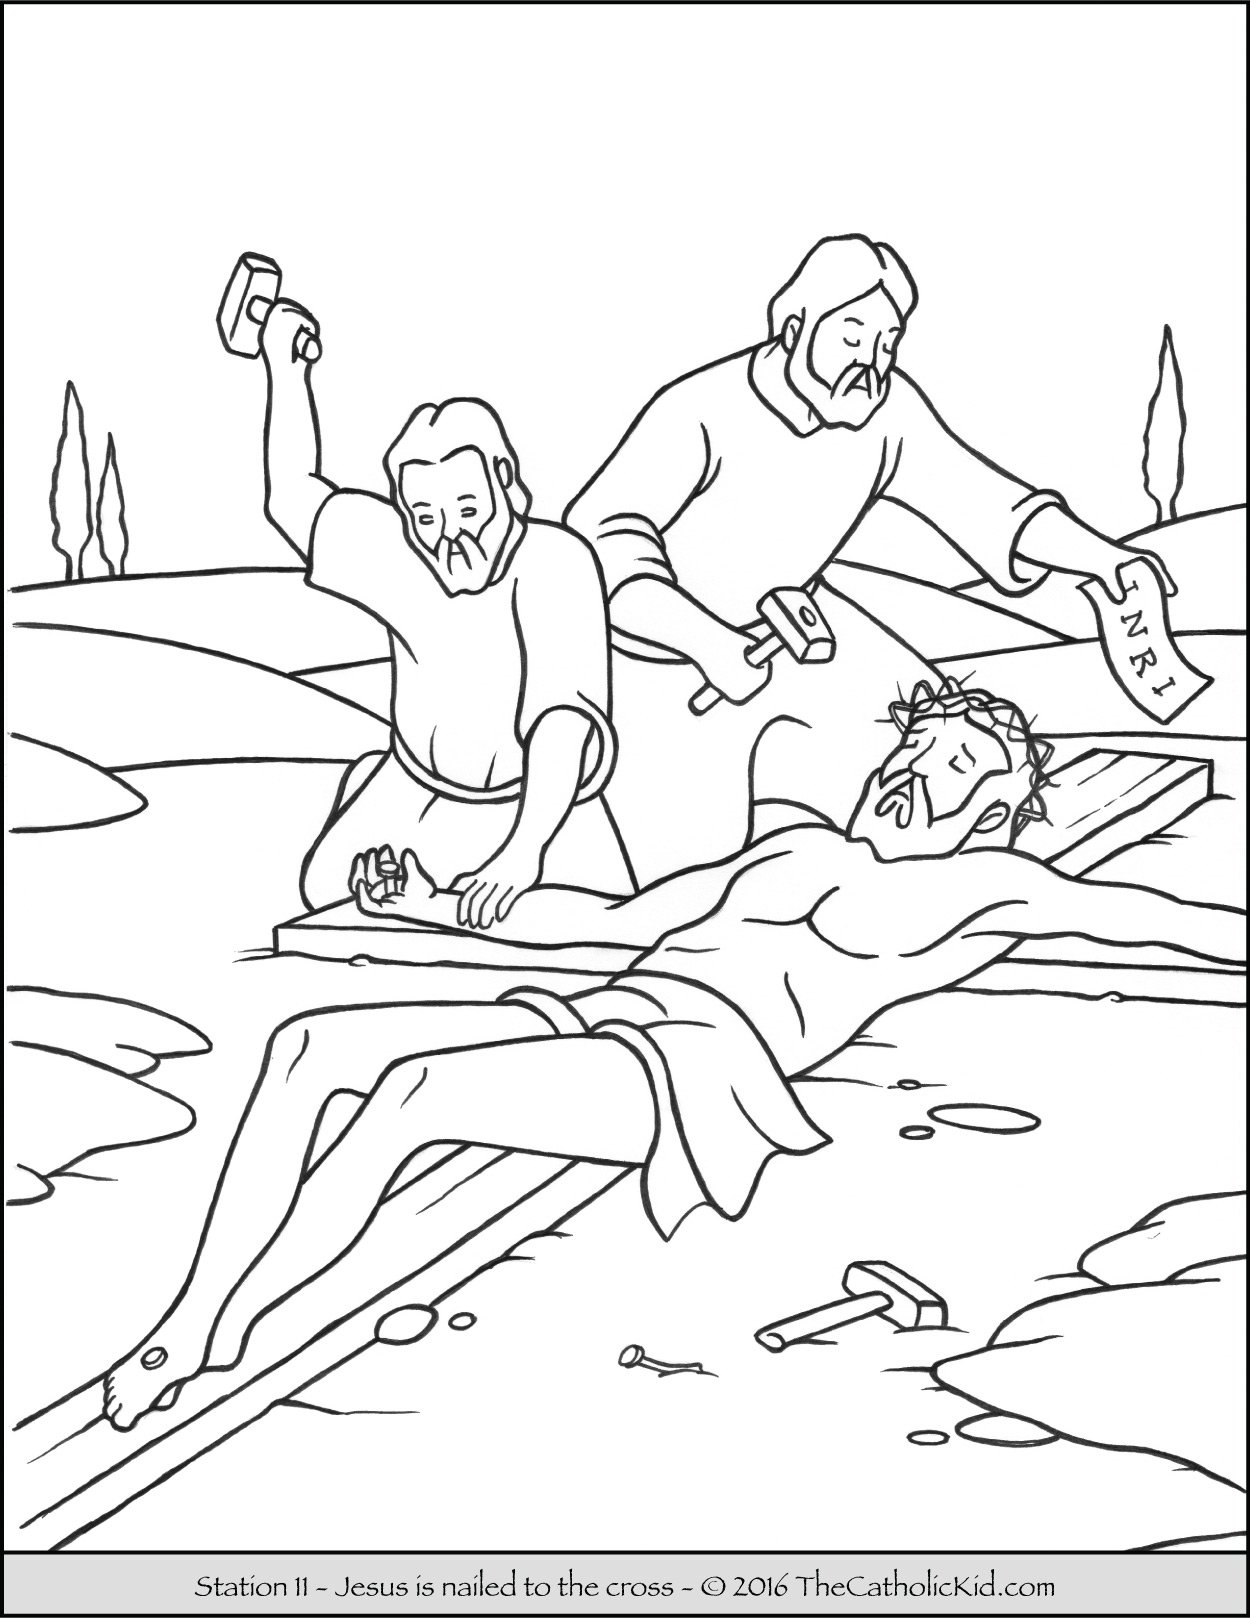 Stations Of The Cross Coloring Pages Best Stations Of The Cross Coloring Pages  The Catholic Kid Inspiration